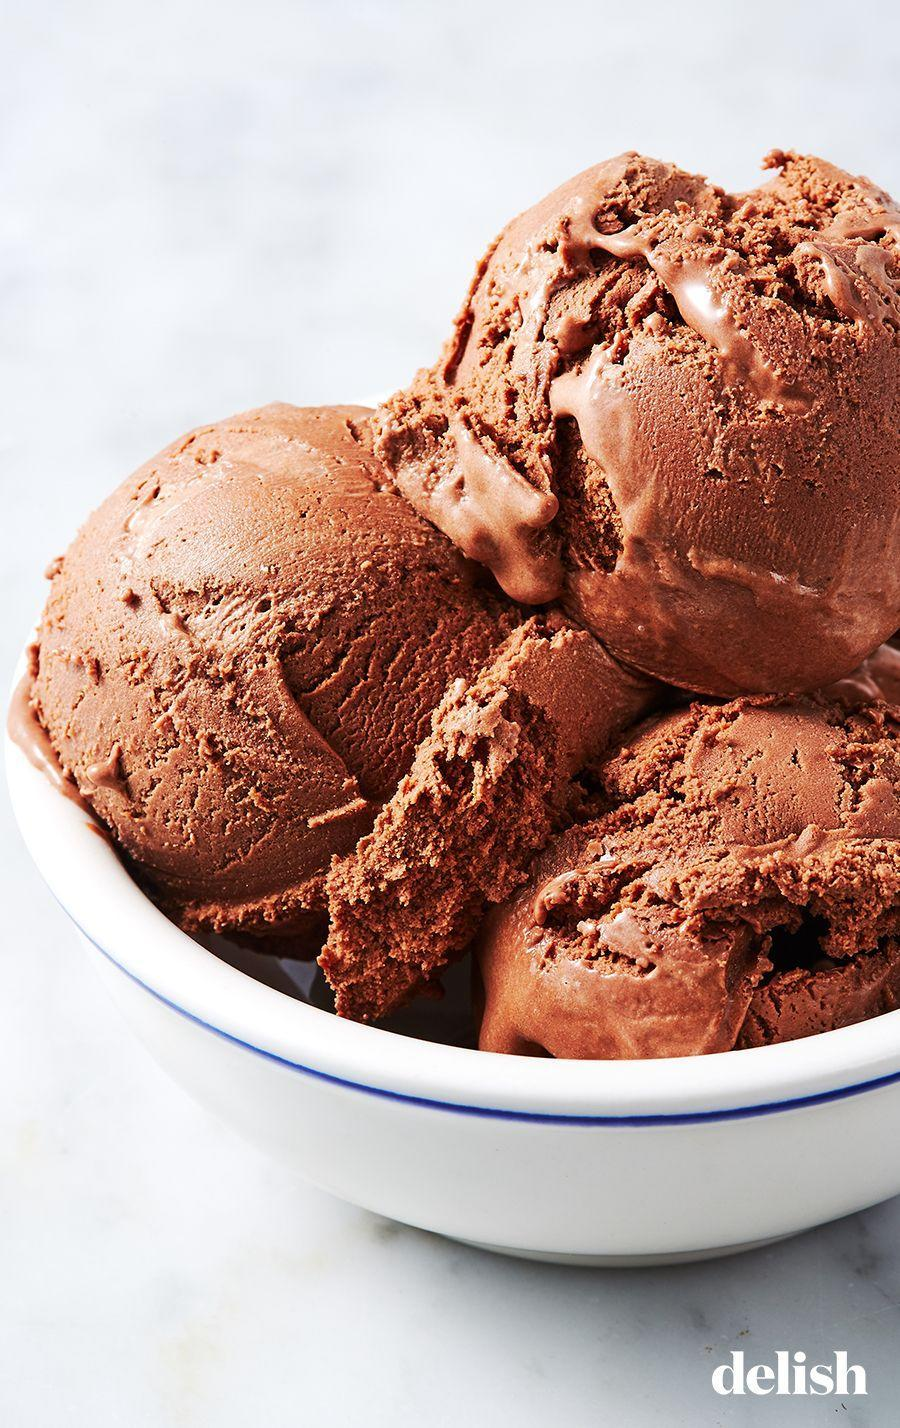 """<p>This is the RICHEST chocolate ice cream ever.</p><p>Get the recipe from <a href=""""https://www.delish.com/cooking/recipe-ideas/a26977162/chocolate-ice-cream-recipe/"""" rel=""""nofollow noopener"""" target=""""_blank"""" data-ylk=""""slk:Delish"""" class=""""link rapid-noclick-resp"""">Delish</a>.</p>"""